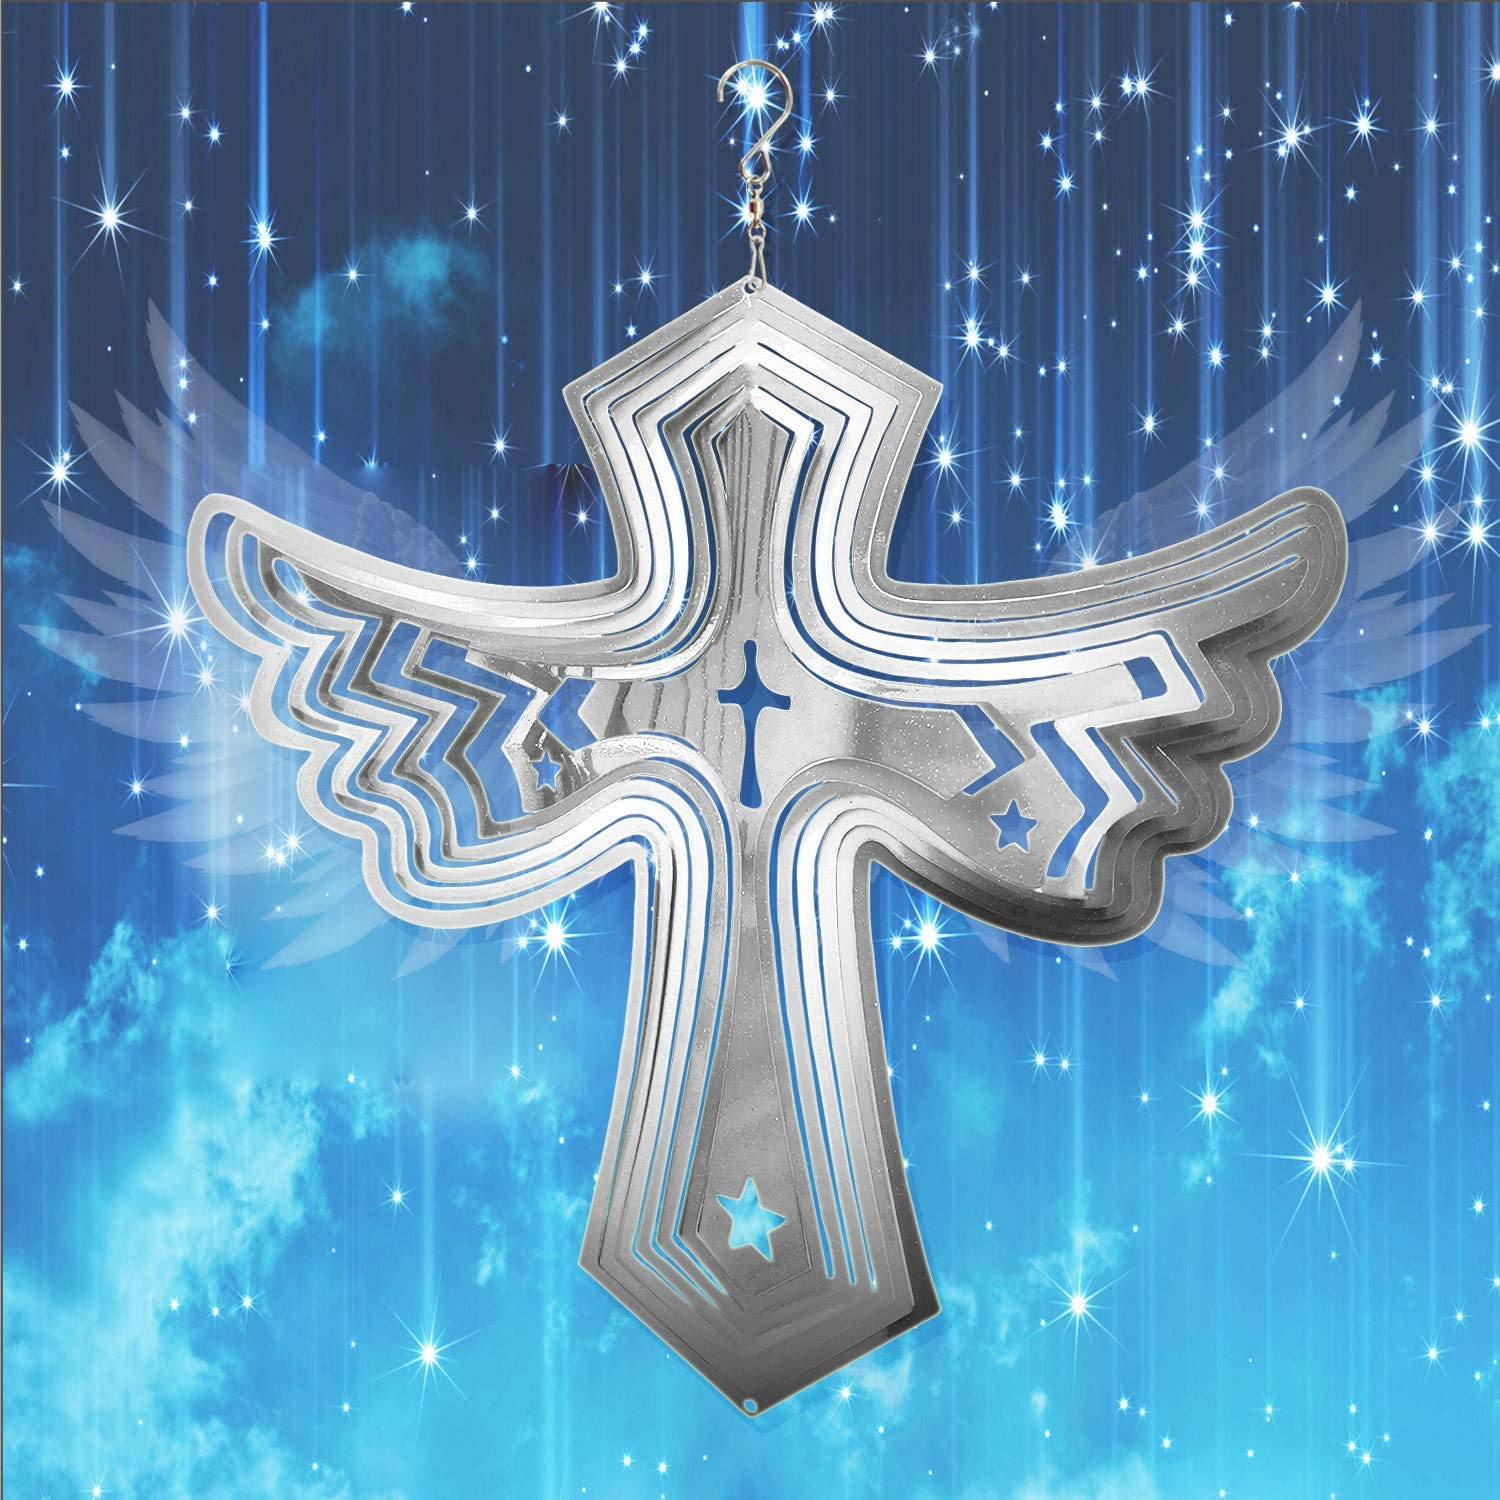 FONMY 55% OFF Wind Spinner-Angel Wing Christmas Indoor Decor. Worth Gift Max 86% OFF